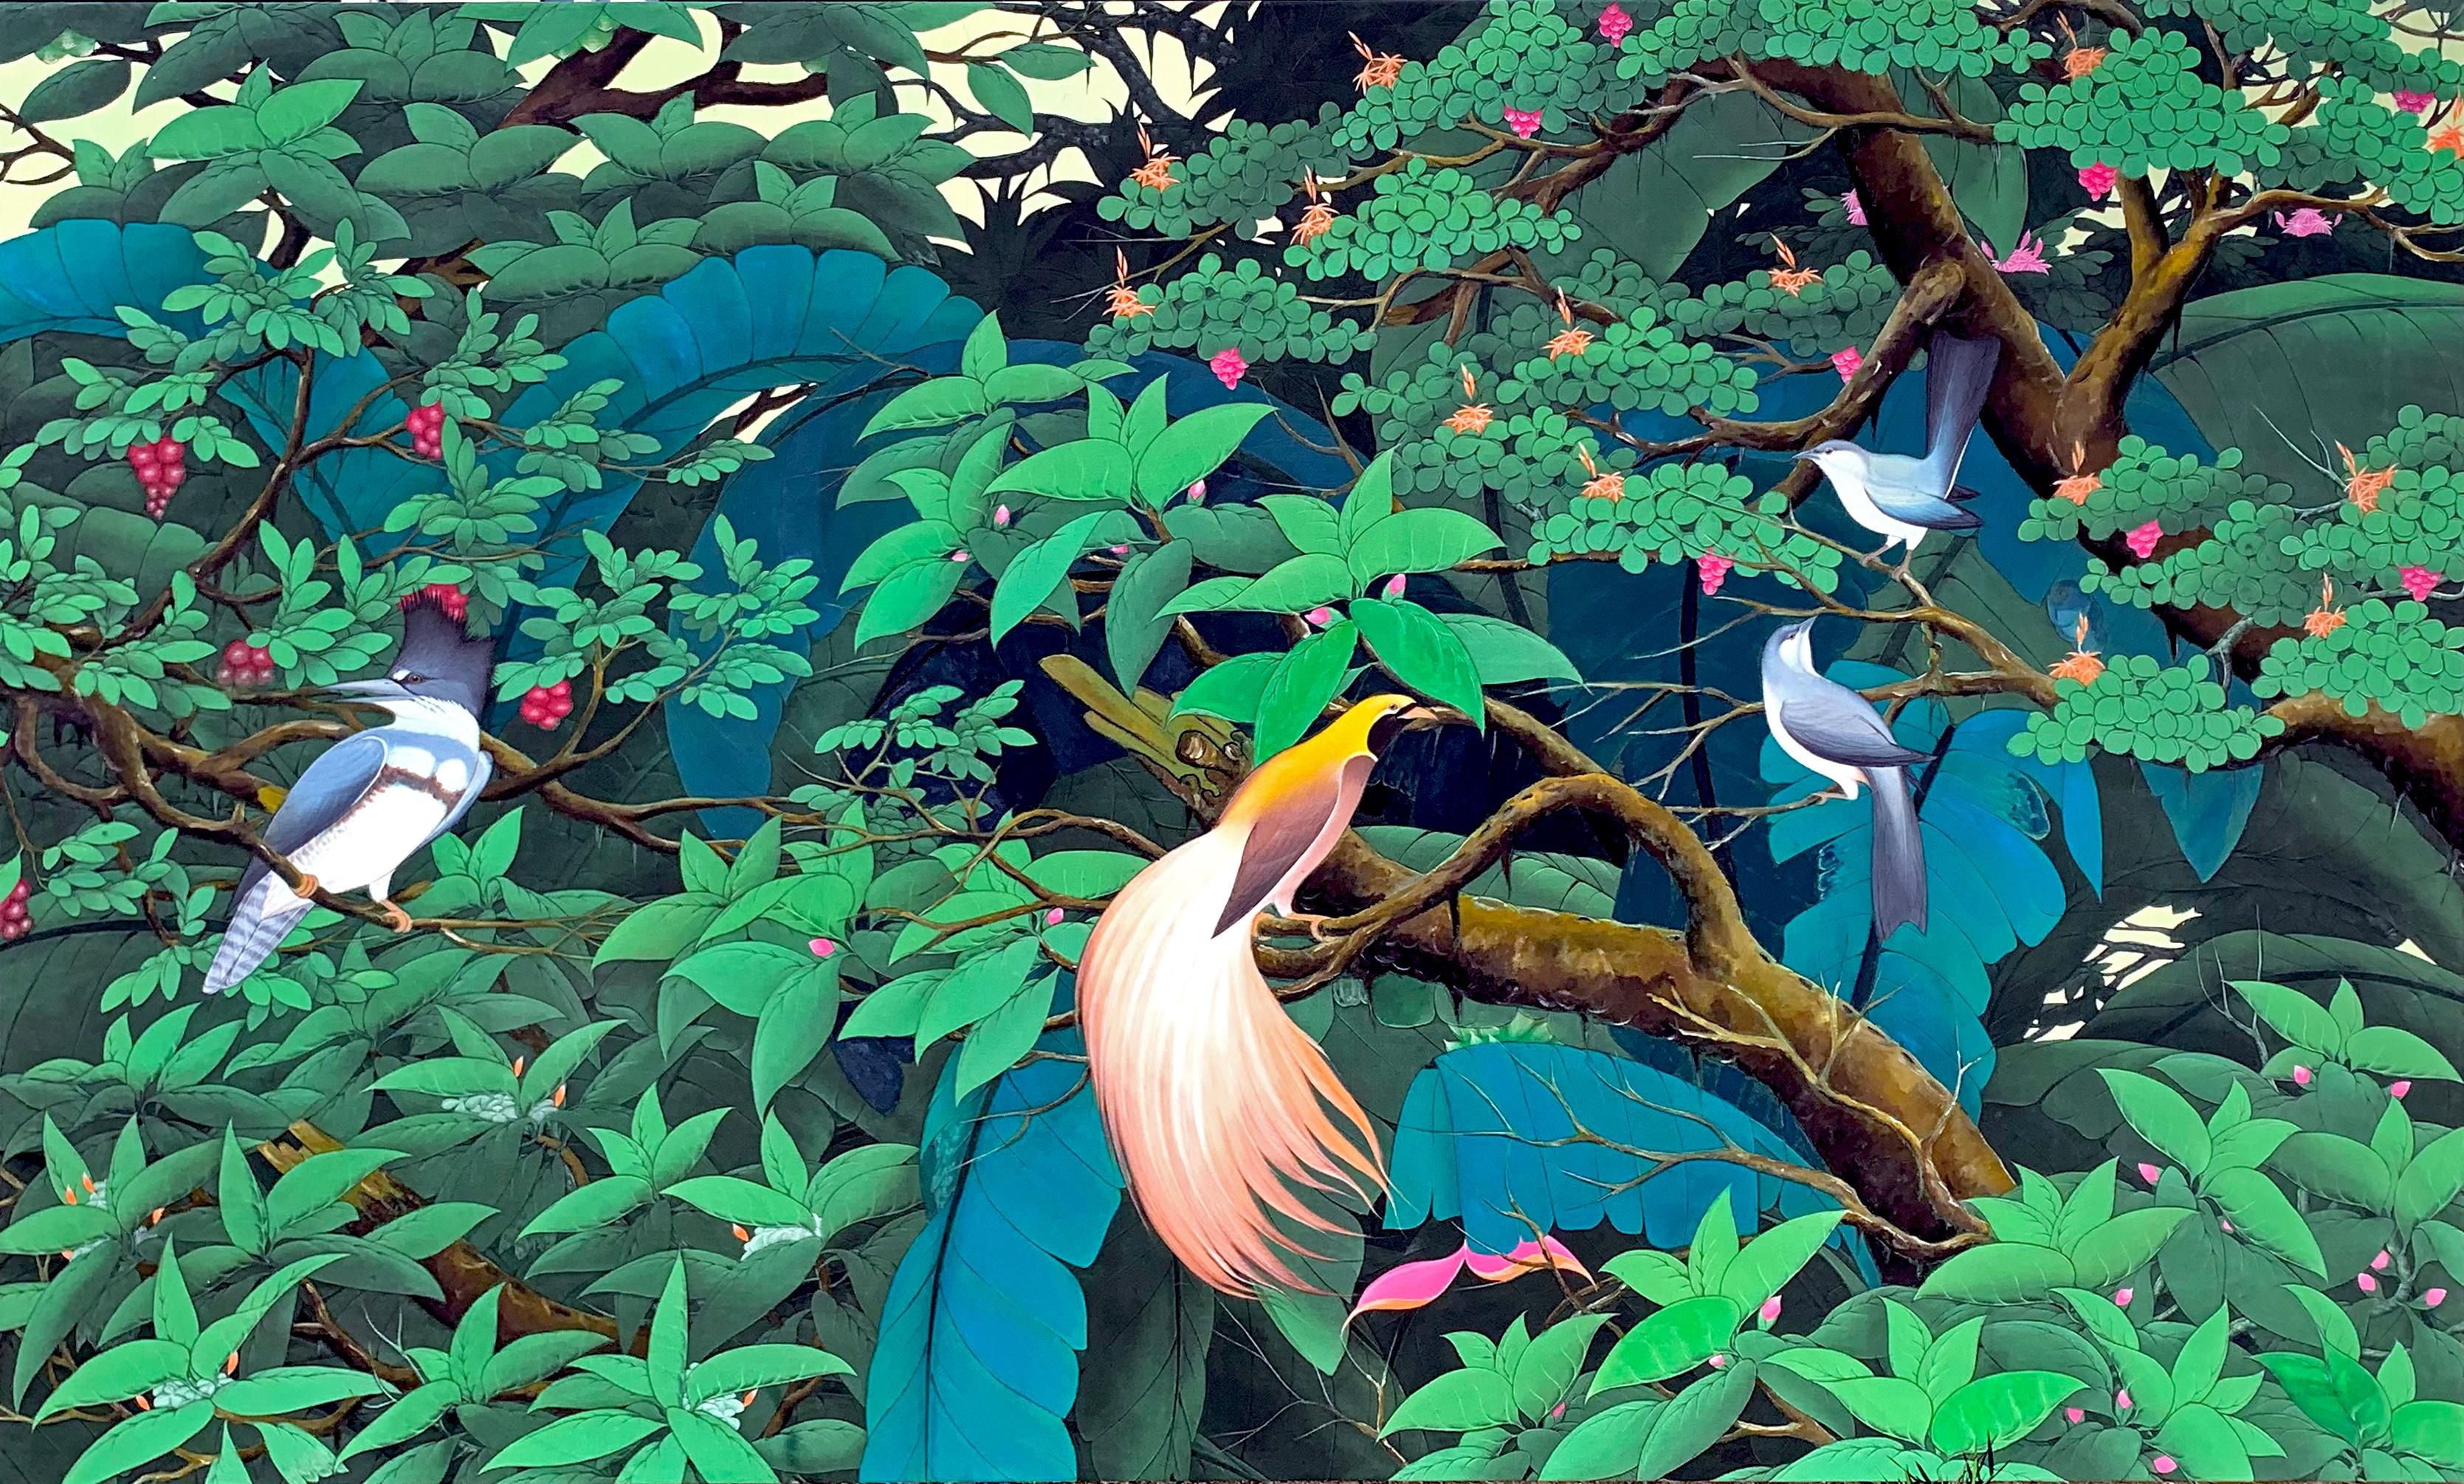 Jungle Love Story by Katharina Husslein Contemporary Landscape